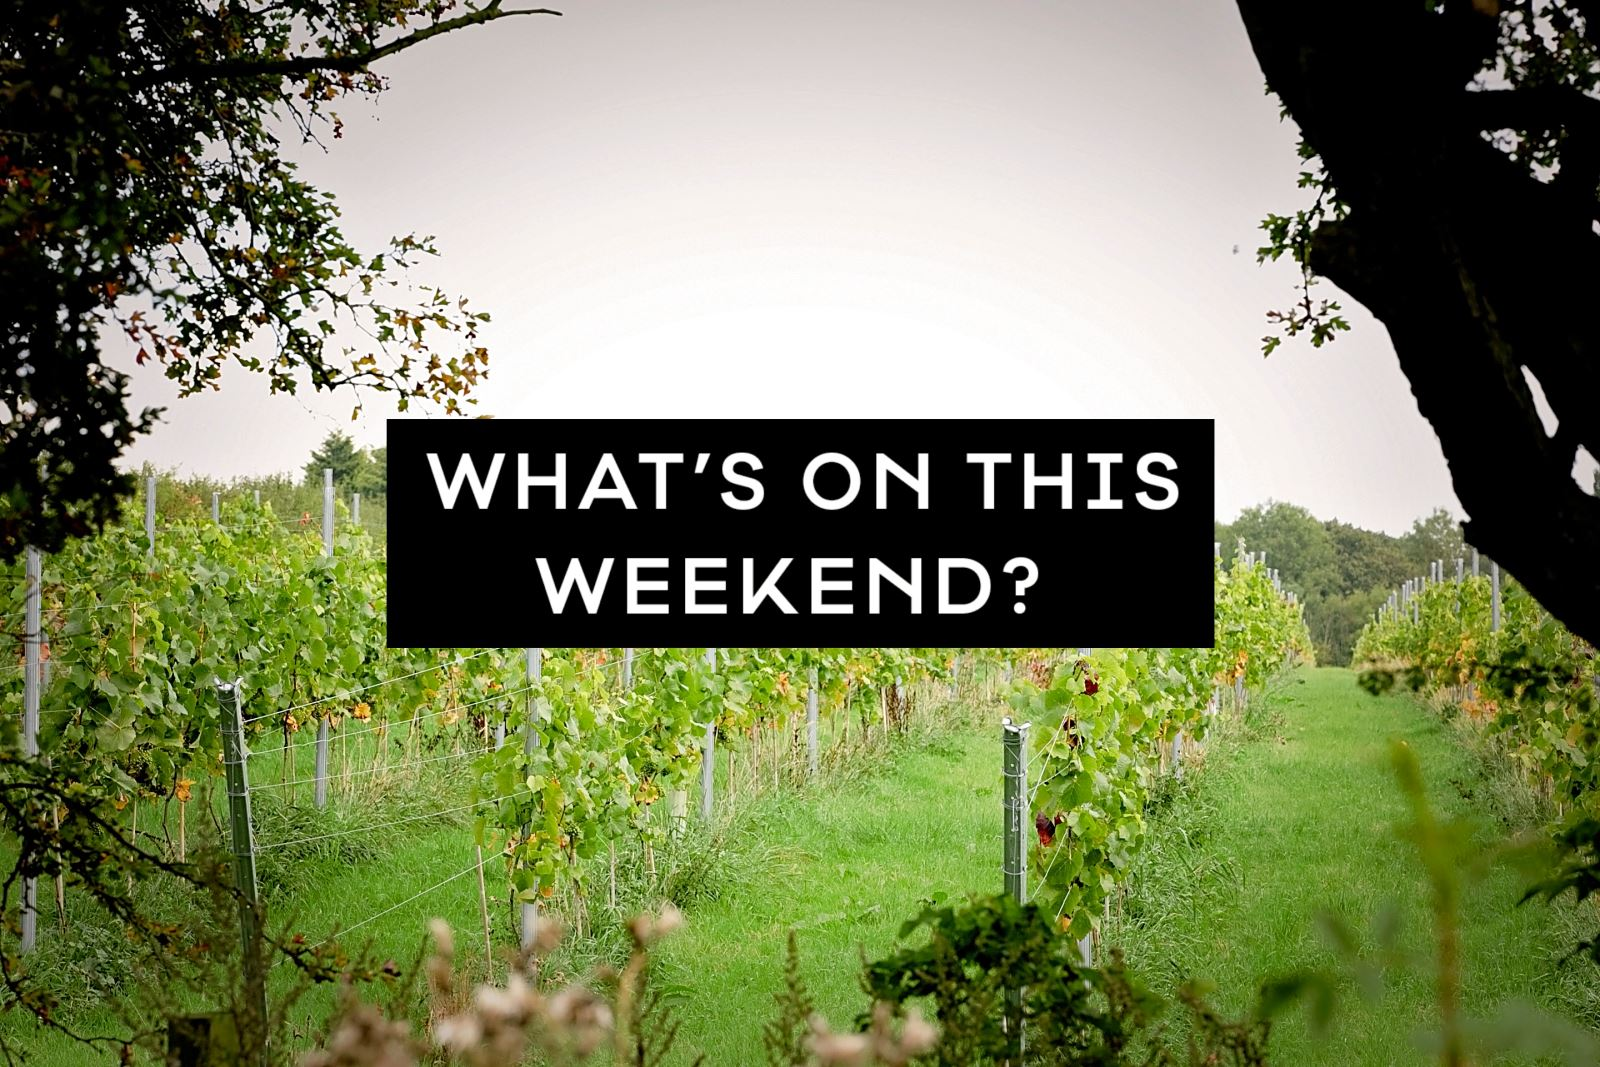 What's On This Weekend?